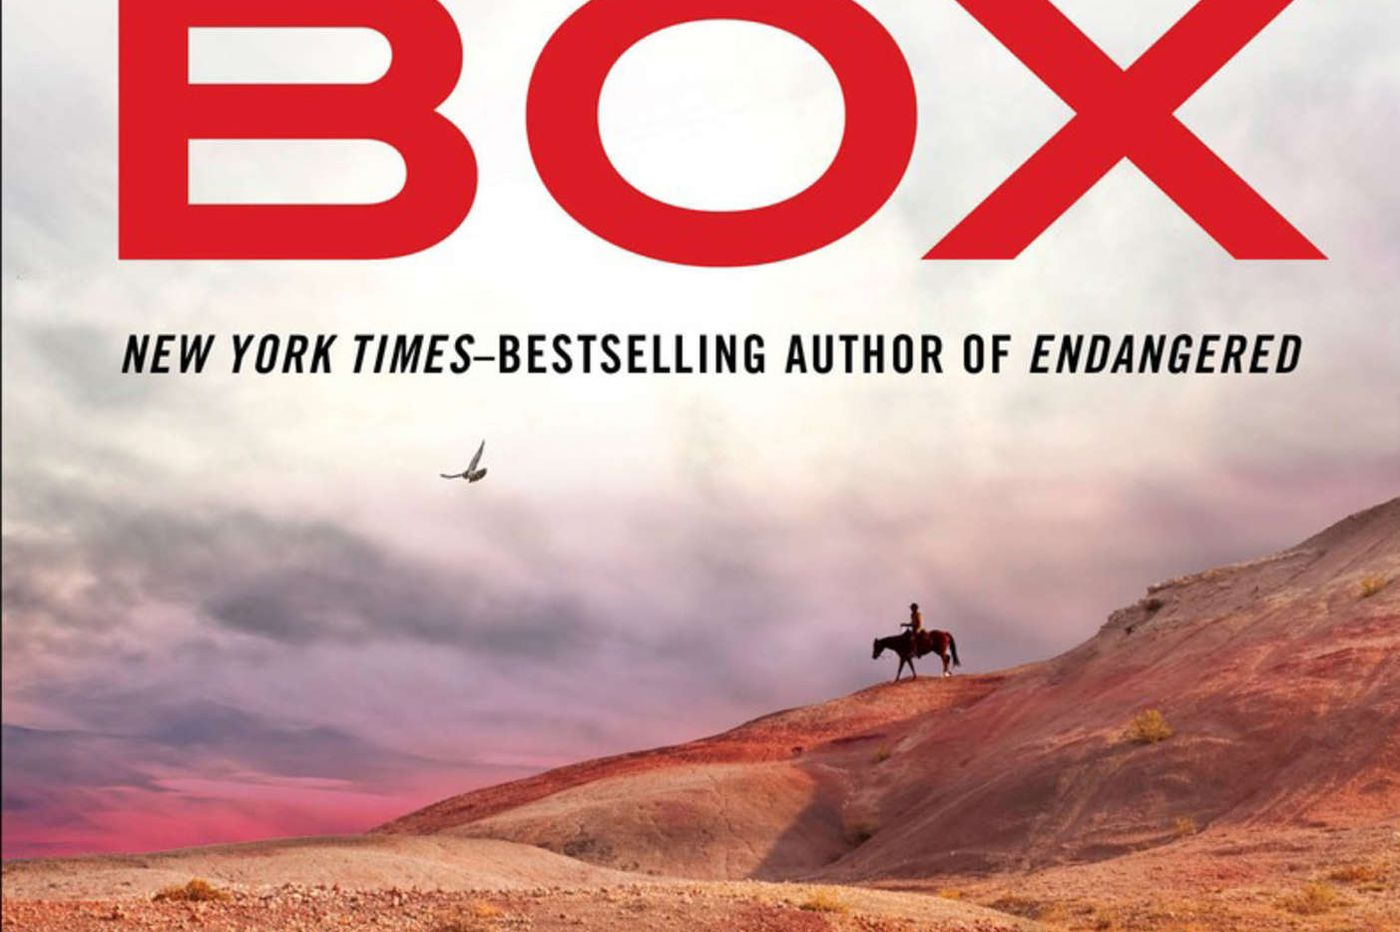 C.J. Box tackles hot-button issues in suspenseful 'Off the Grid'